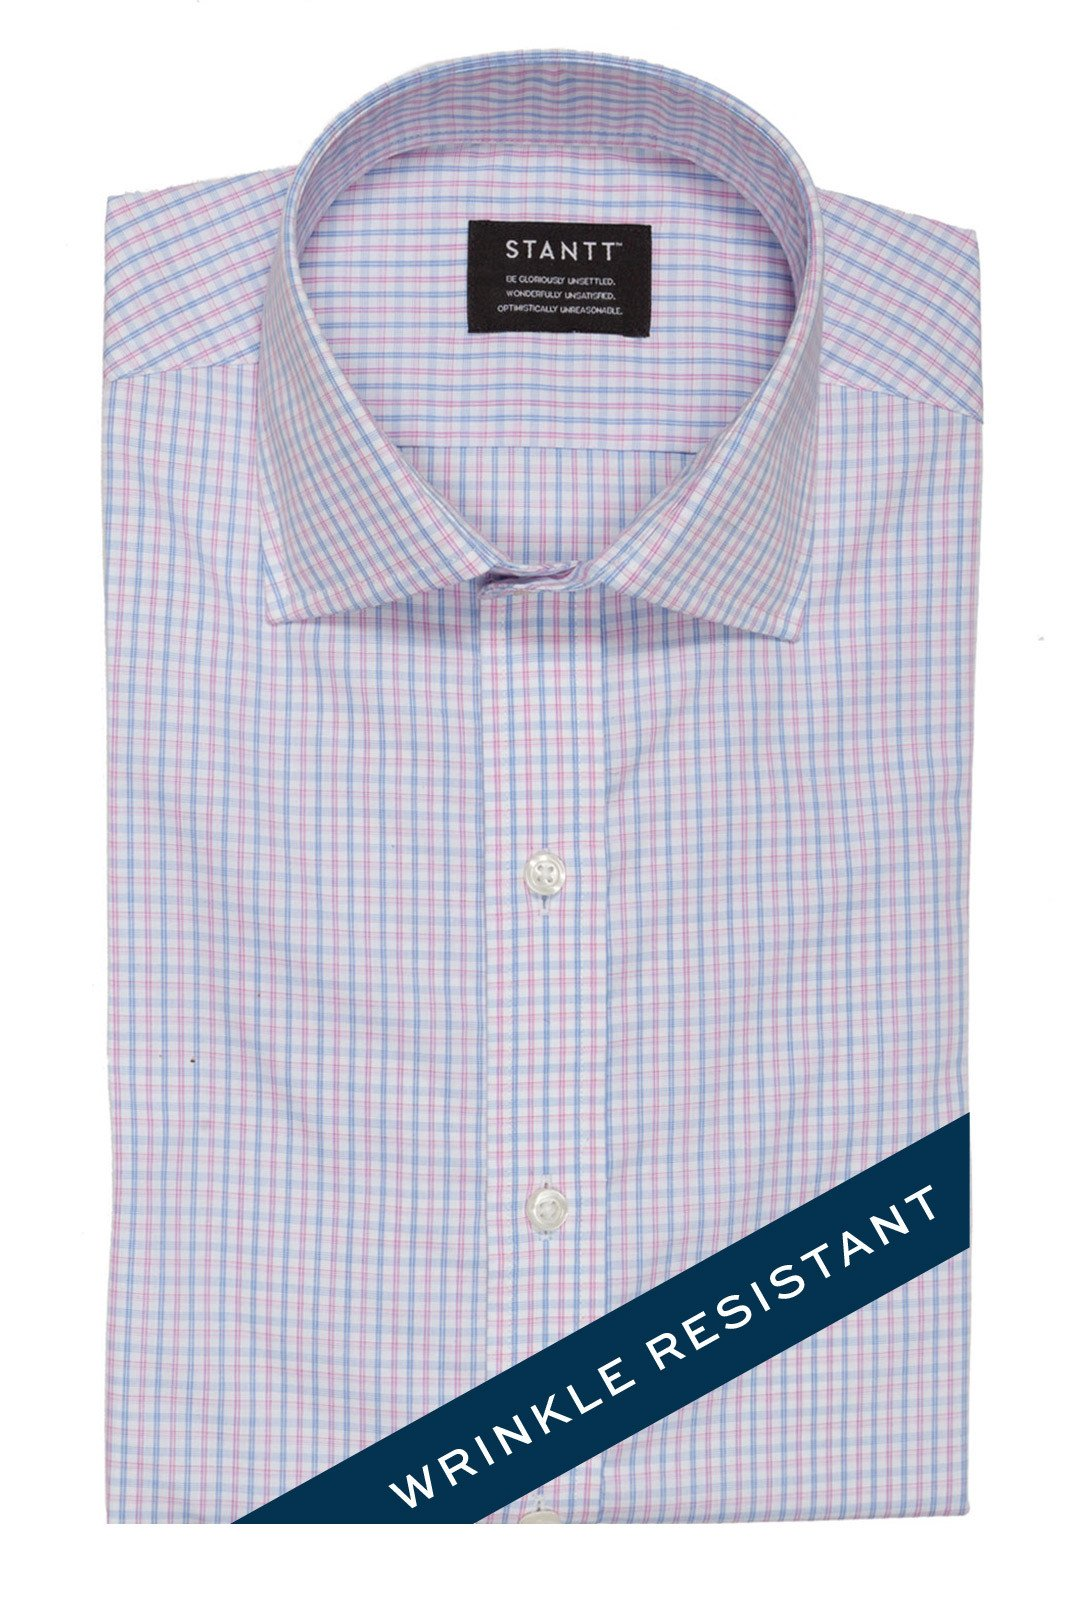 Wrinkle-Resistant Light Blue and Pink Bordered Tattersall: Modified-Spread Collar, Barrel Cuff